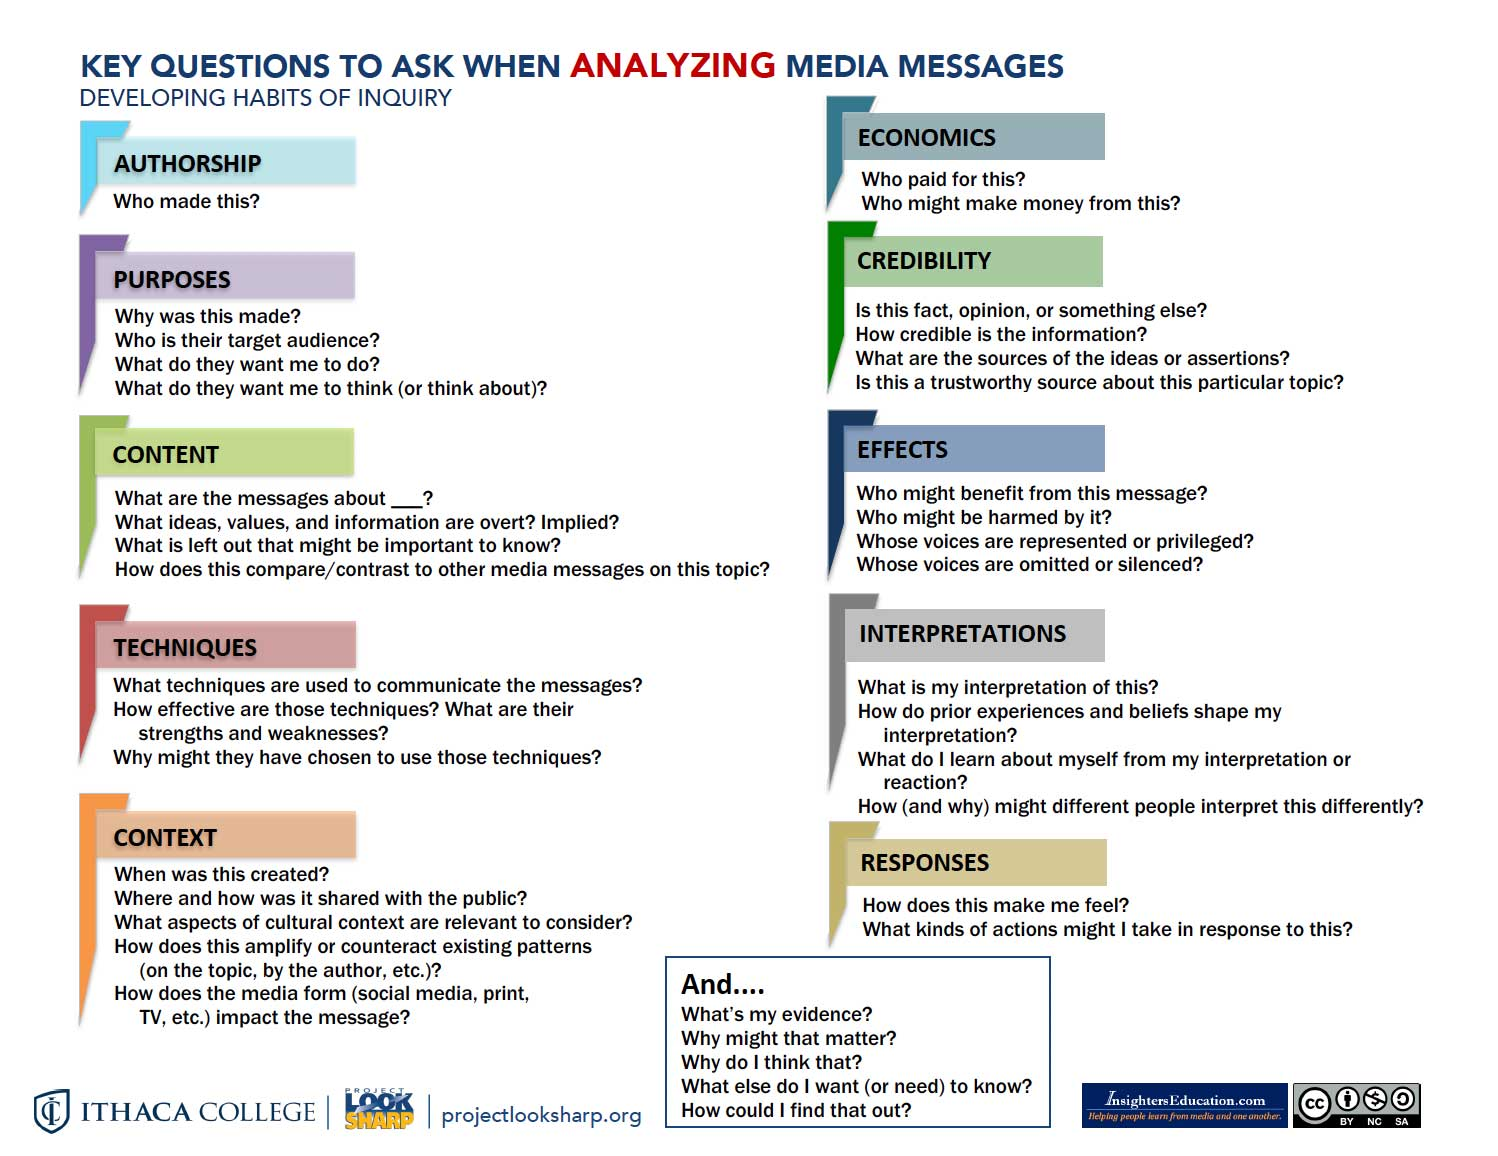 key questions to ask about media messages infographic